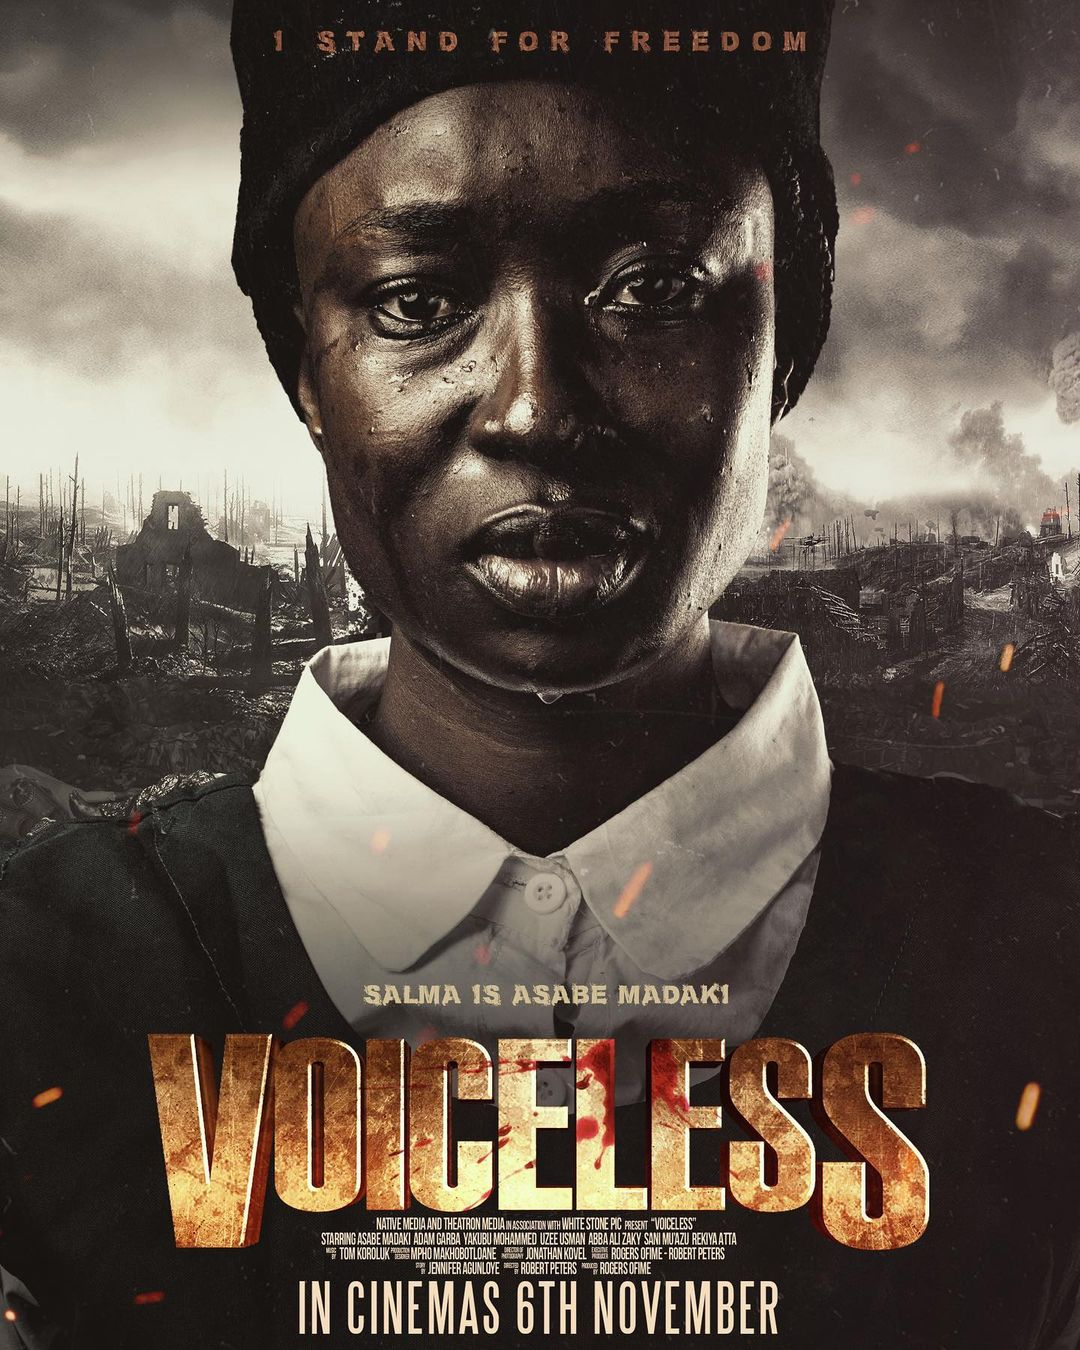 121079947 2421479848160758 2059639260612229134 n - Every Nollywood Movie Releasing This November 2020